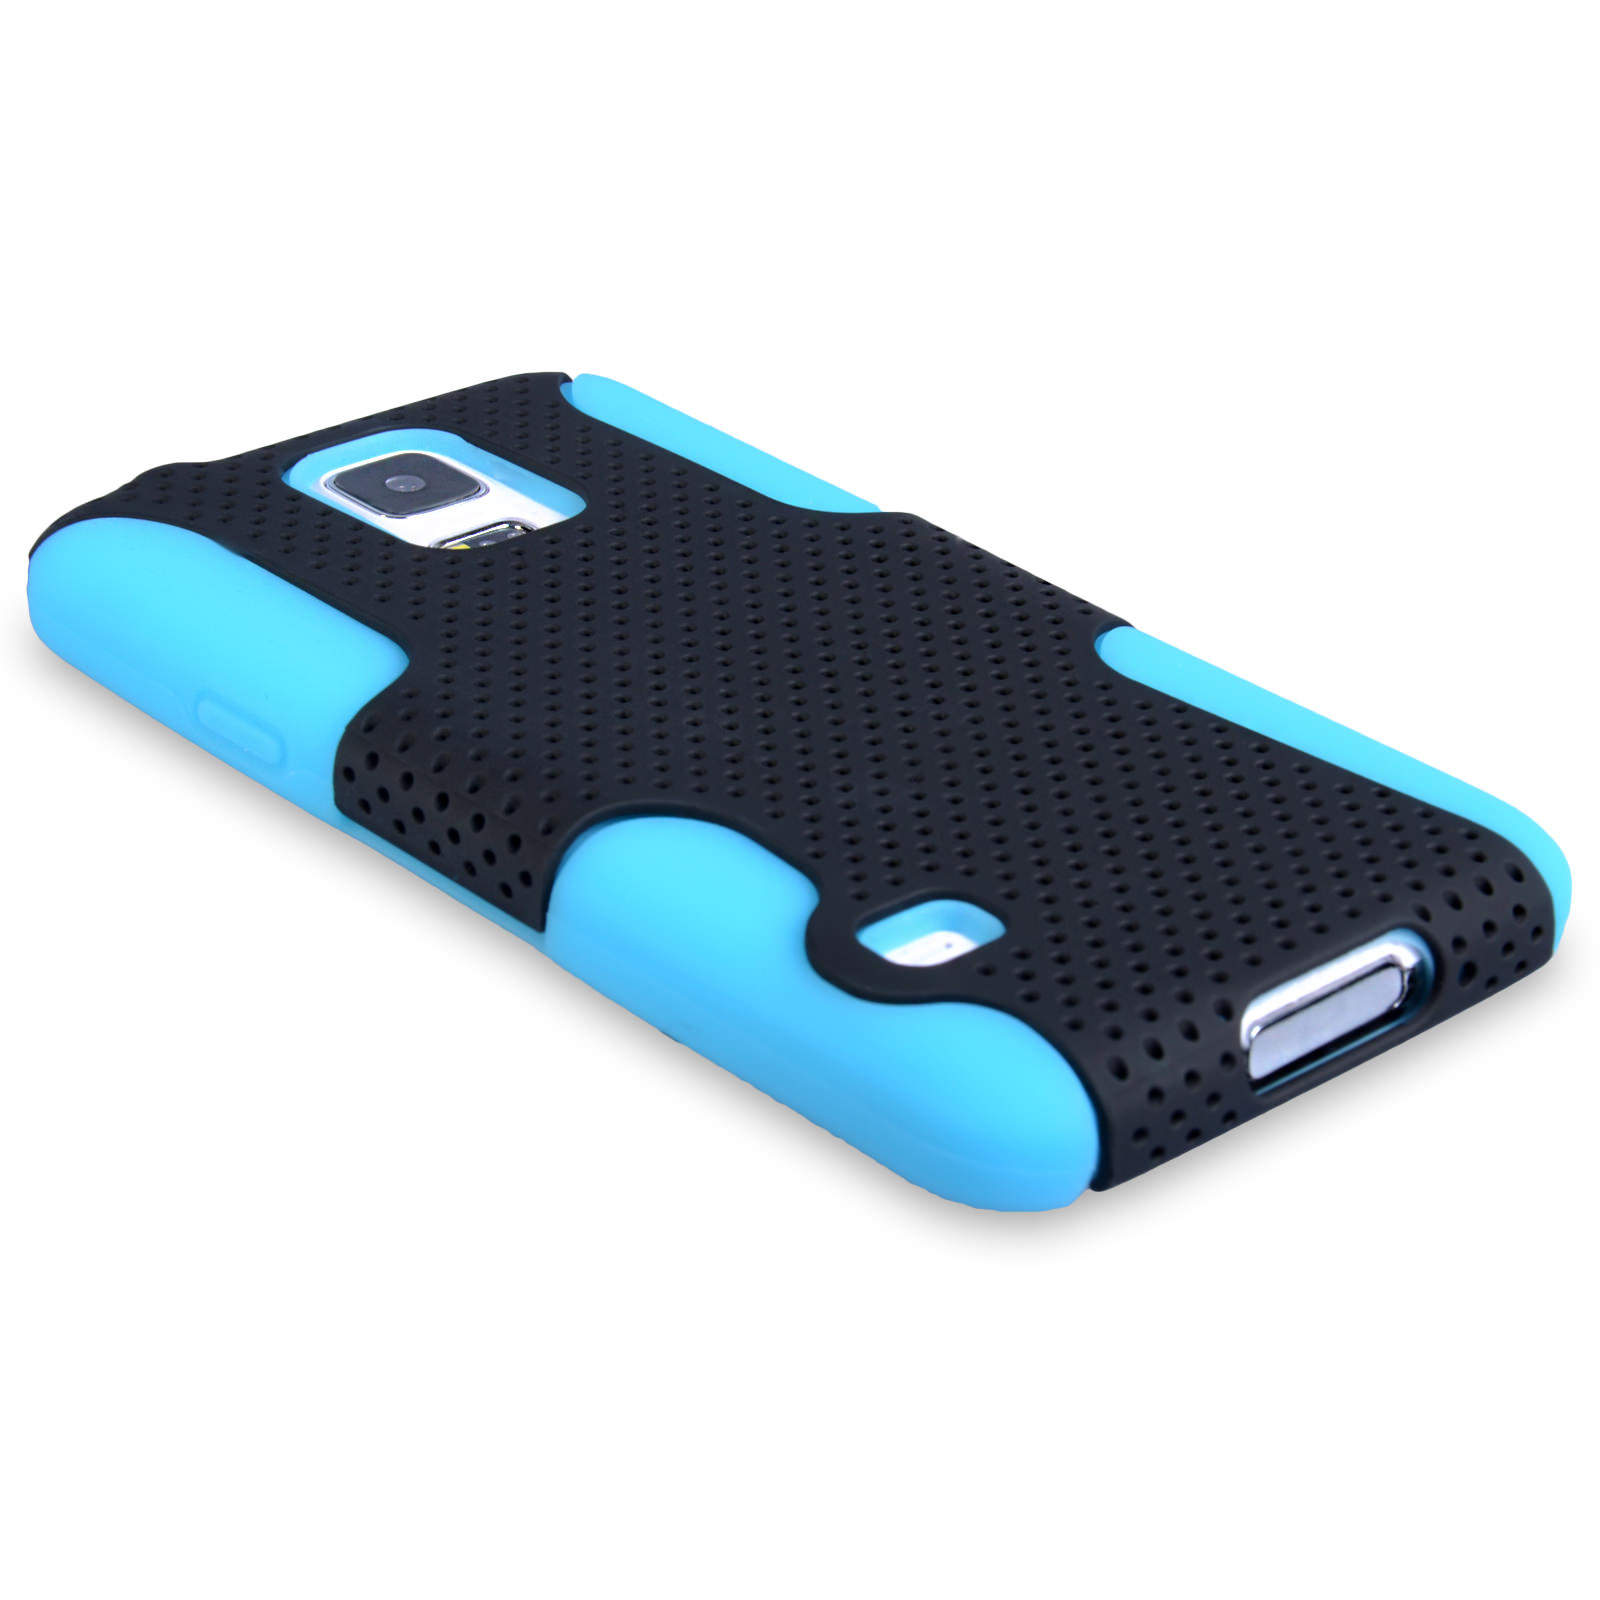 YouSave Samsung Galaxy S5 Tough Mesh Combo Silicone Case - Blue-Black